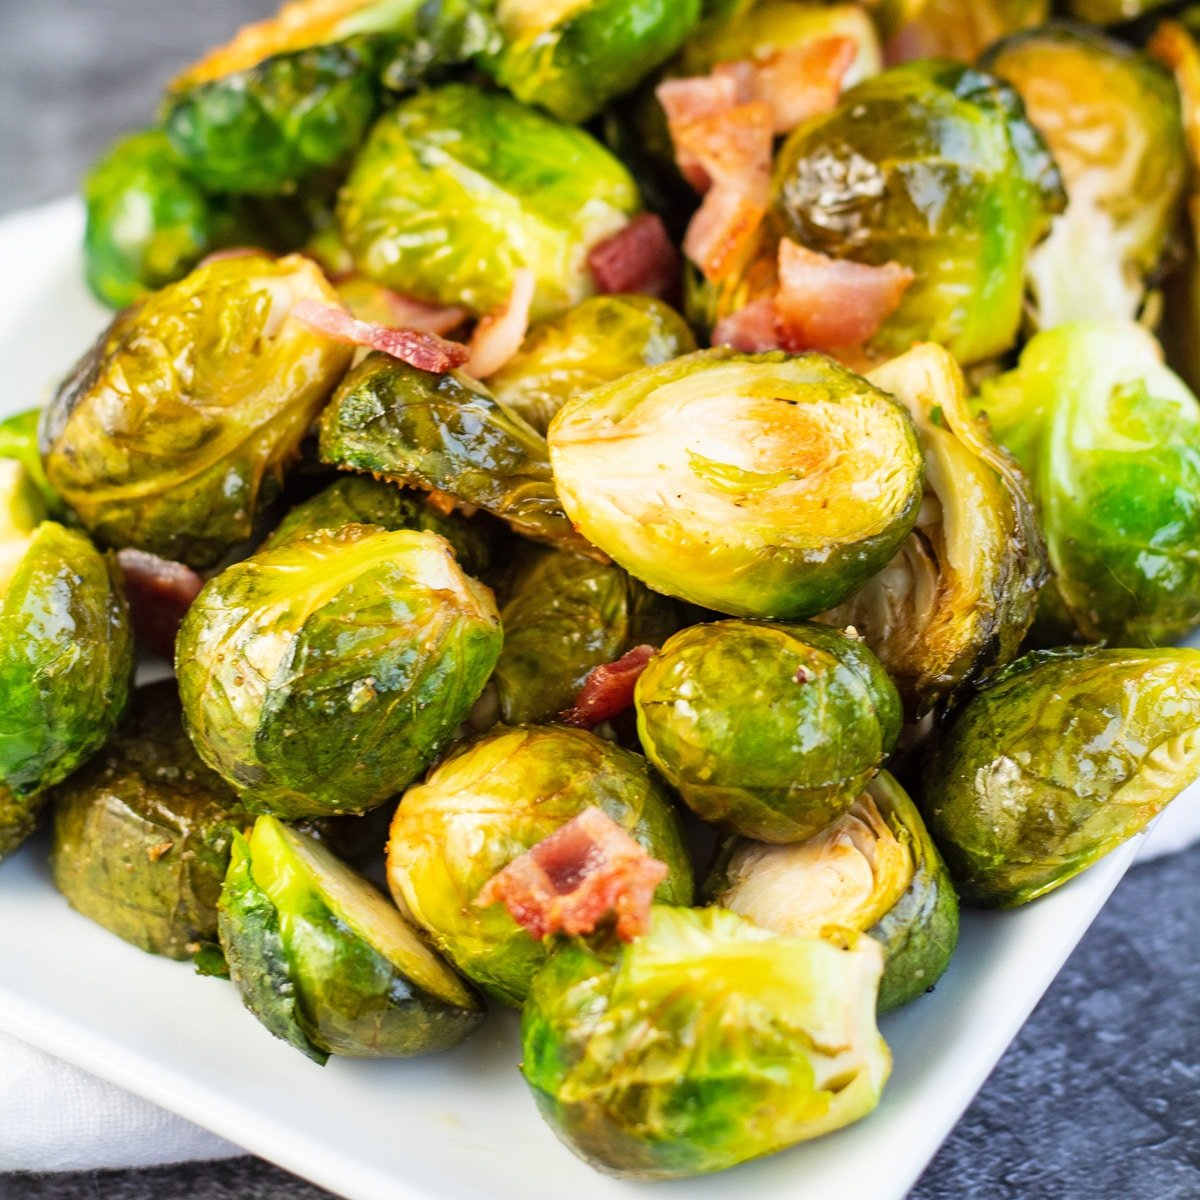 Hearty smoked brussel sprouts tossed in batter with bacon and served on white platter.